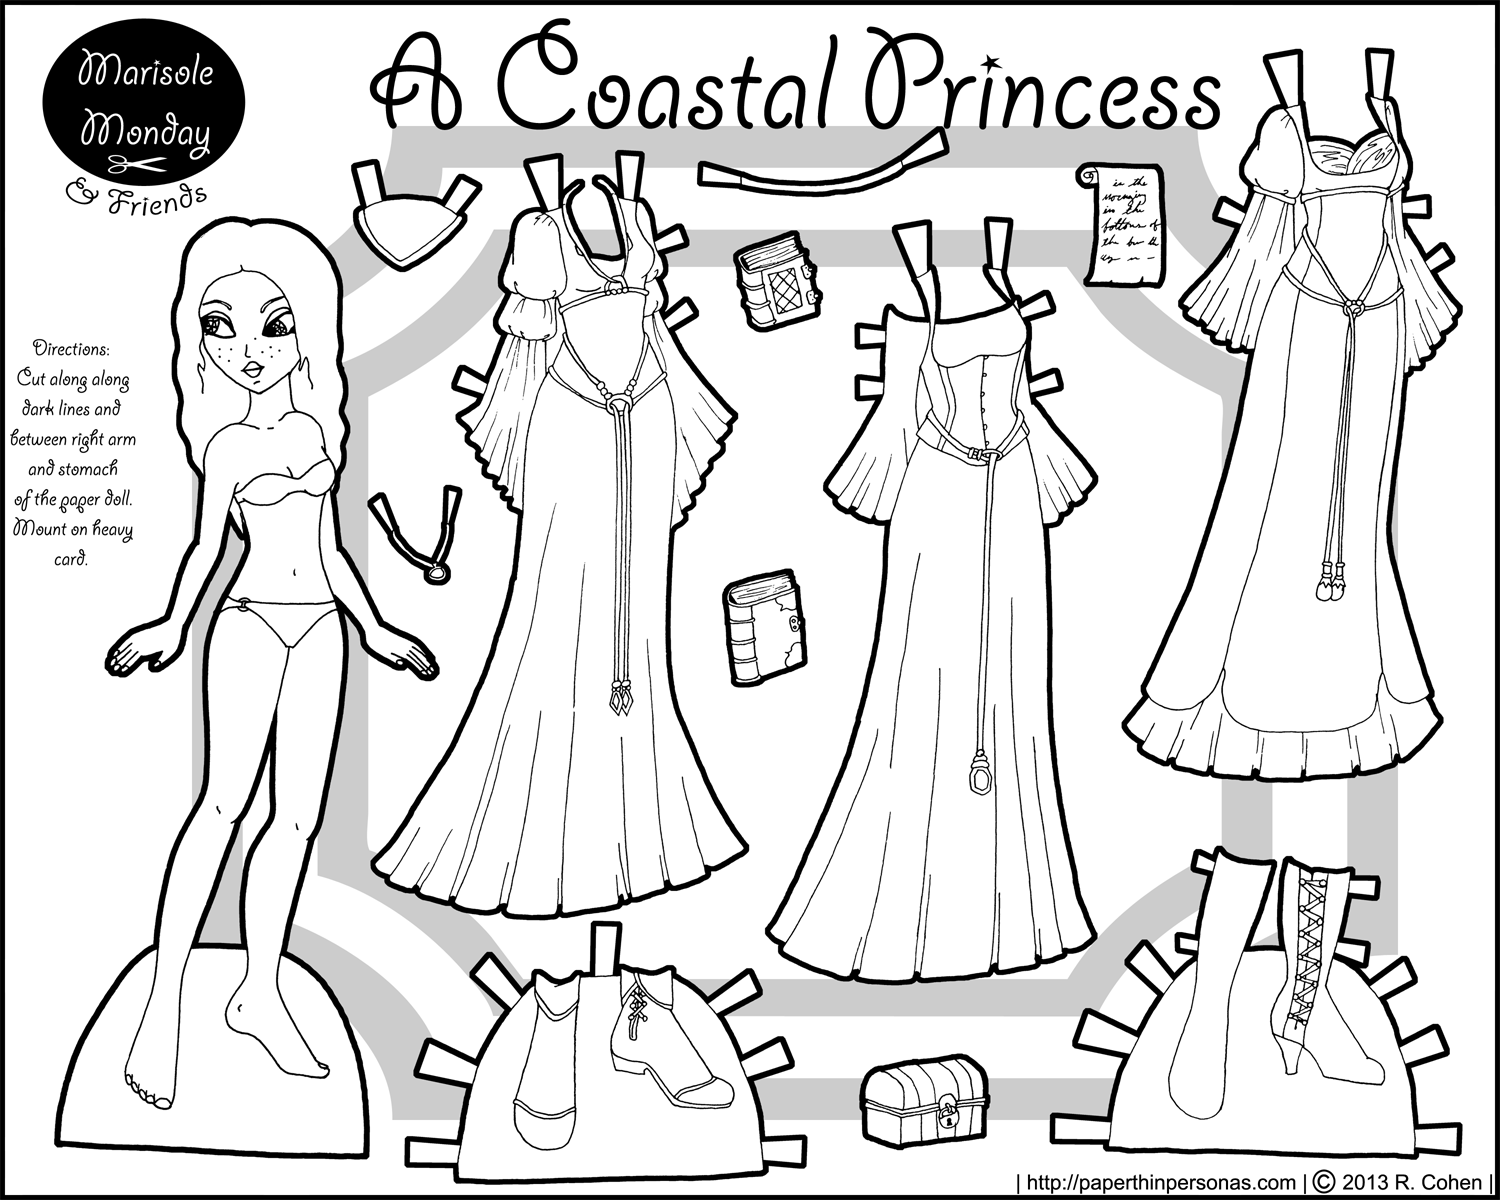 Marisole Monday: Coastal Princess | Dolls, Pdf and Printable paper